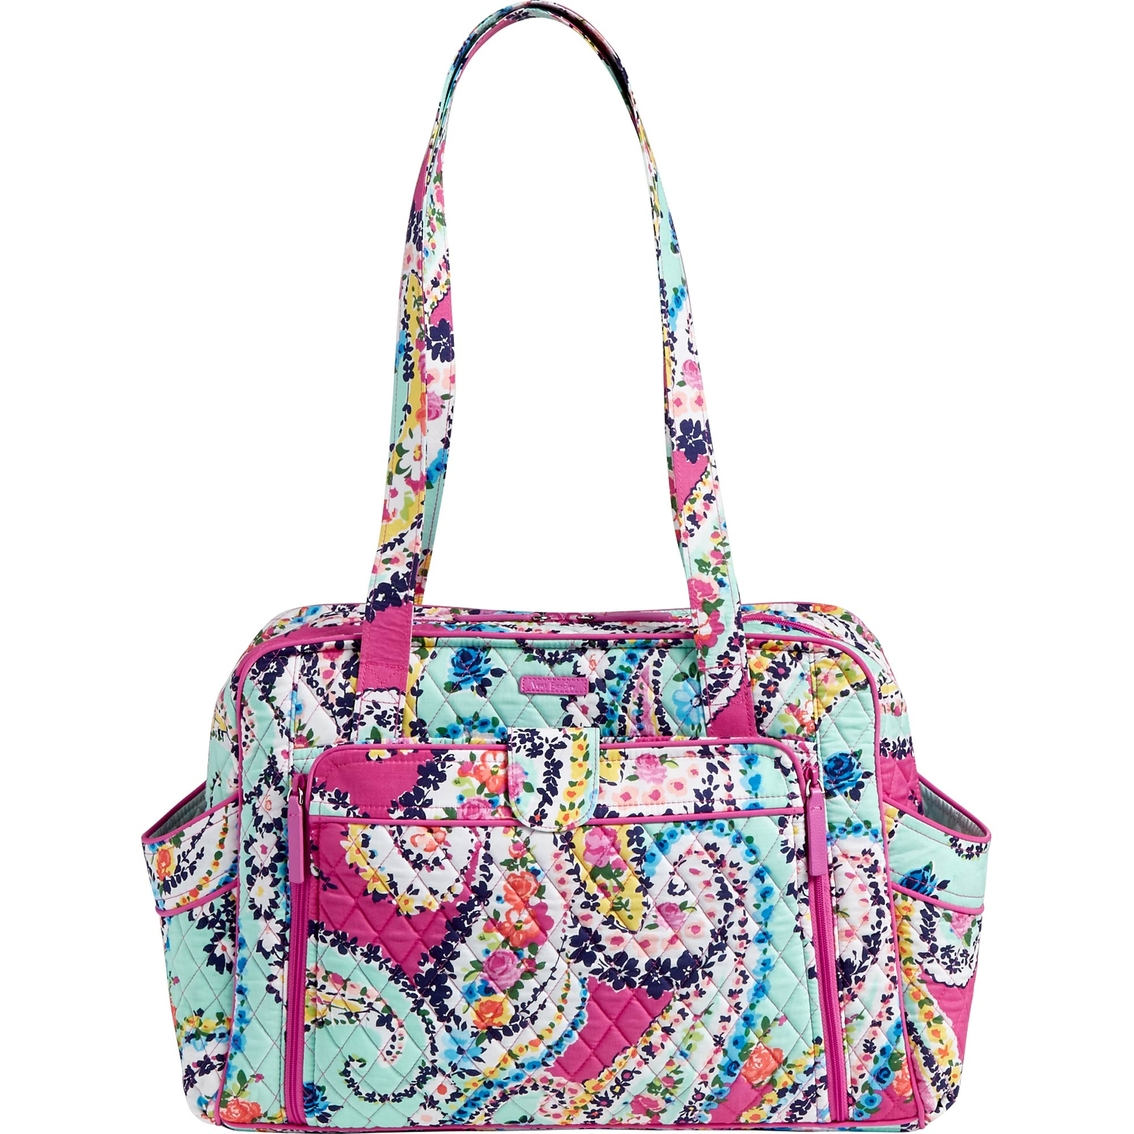 Vera Bradley Signature Stroll Around Baby Bag Wildflower Paisley